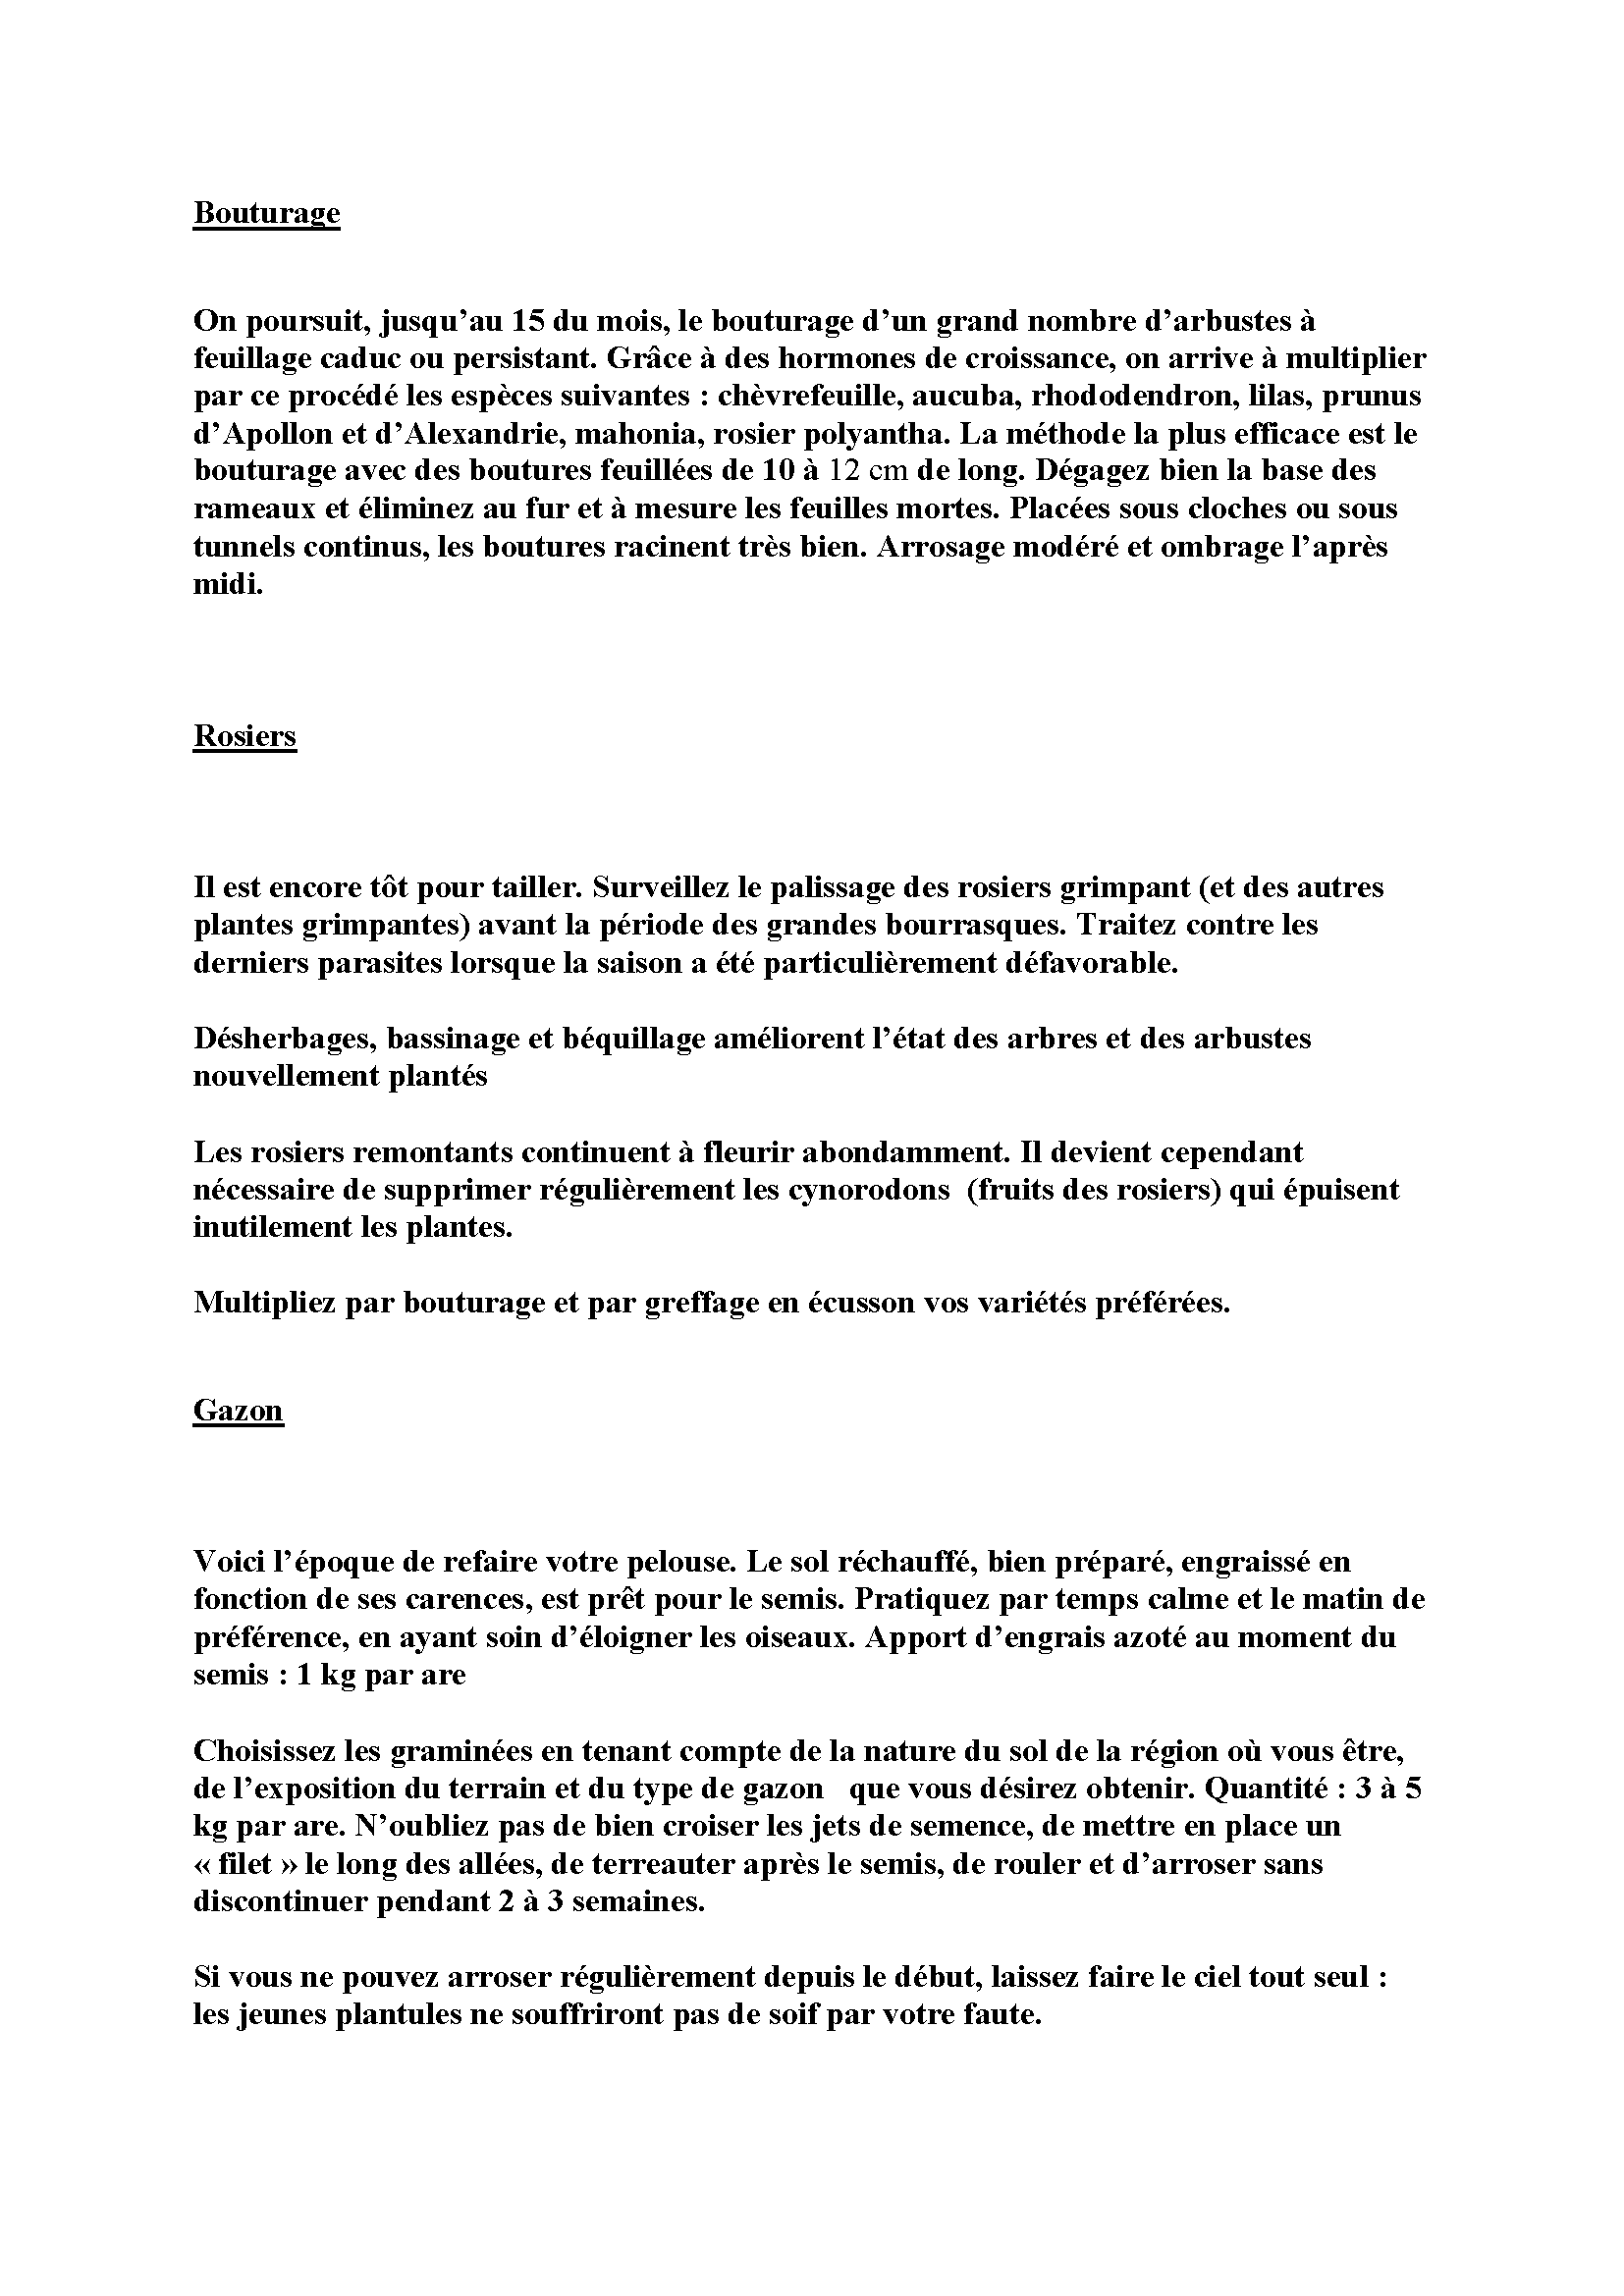 http://palife.free.fr/up/Travaux%20de%20septembre_Page_08.png